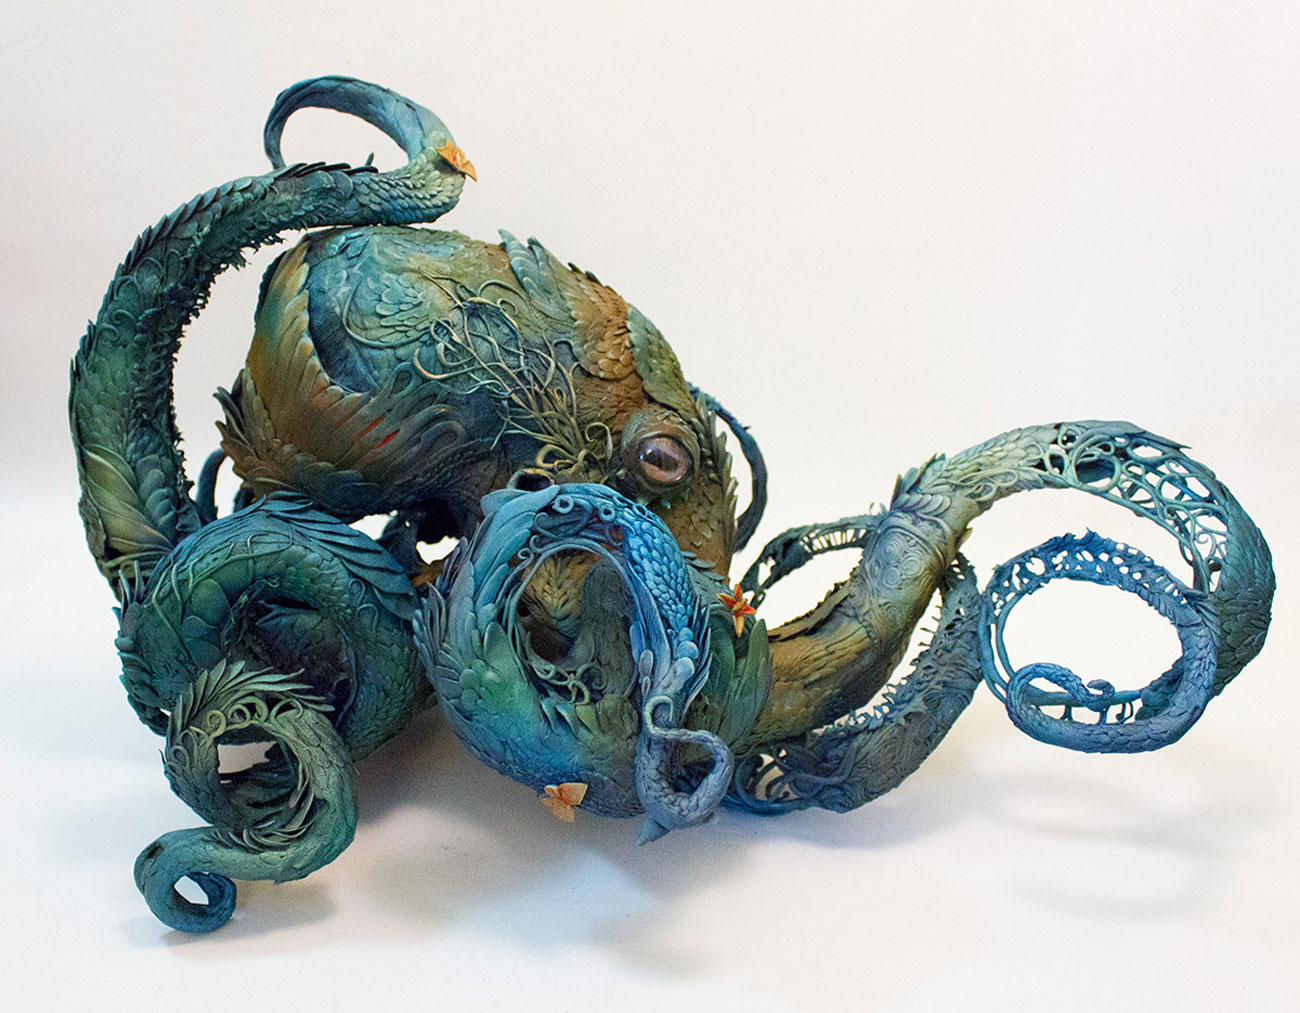 Ellen jewett octopus